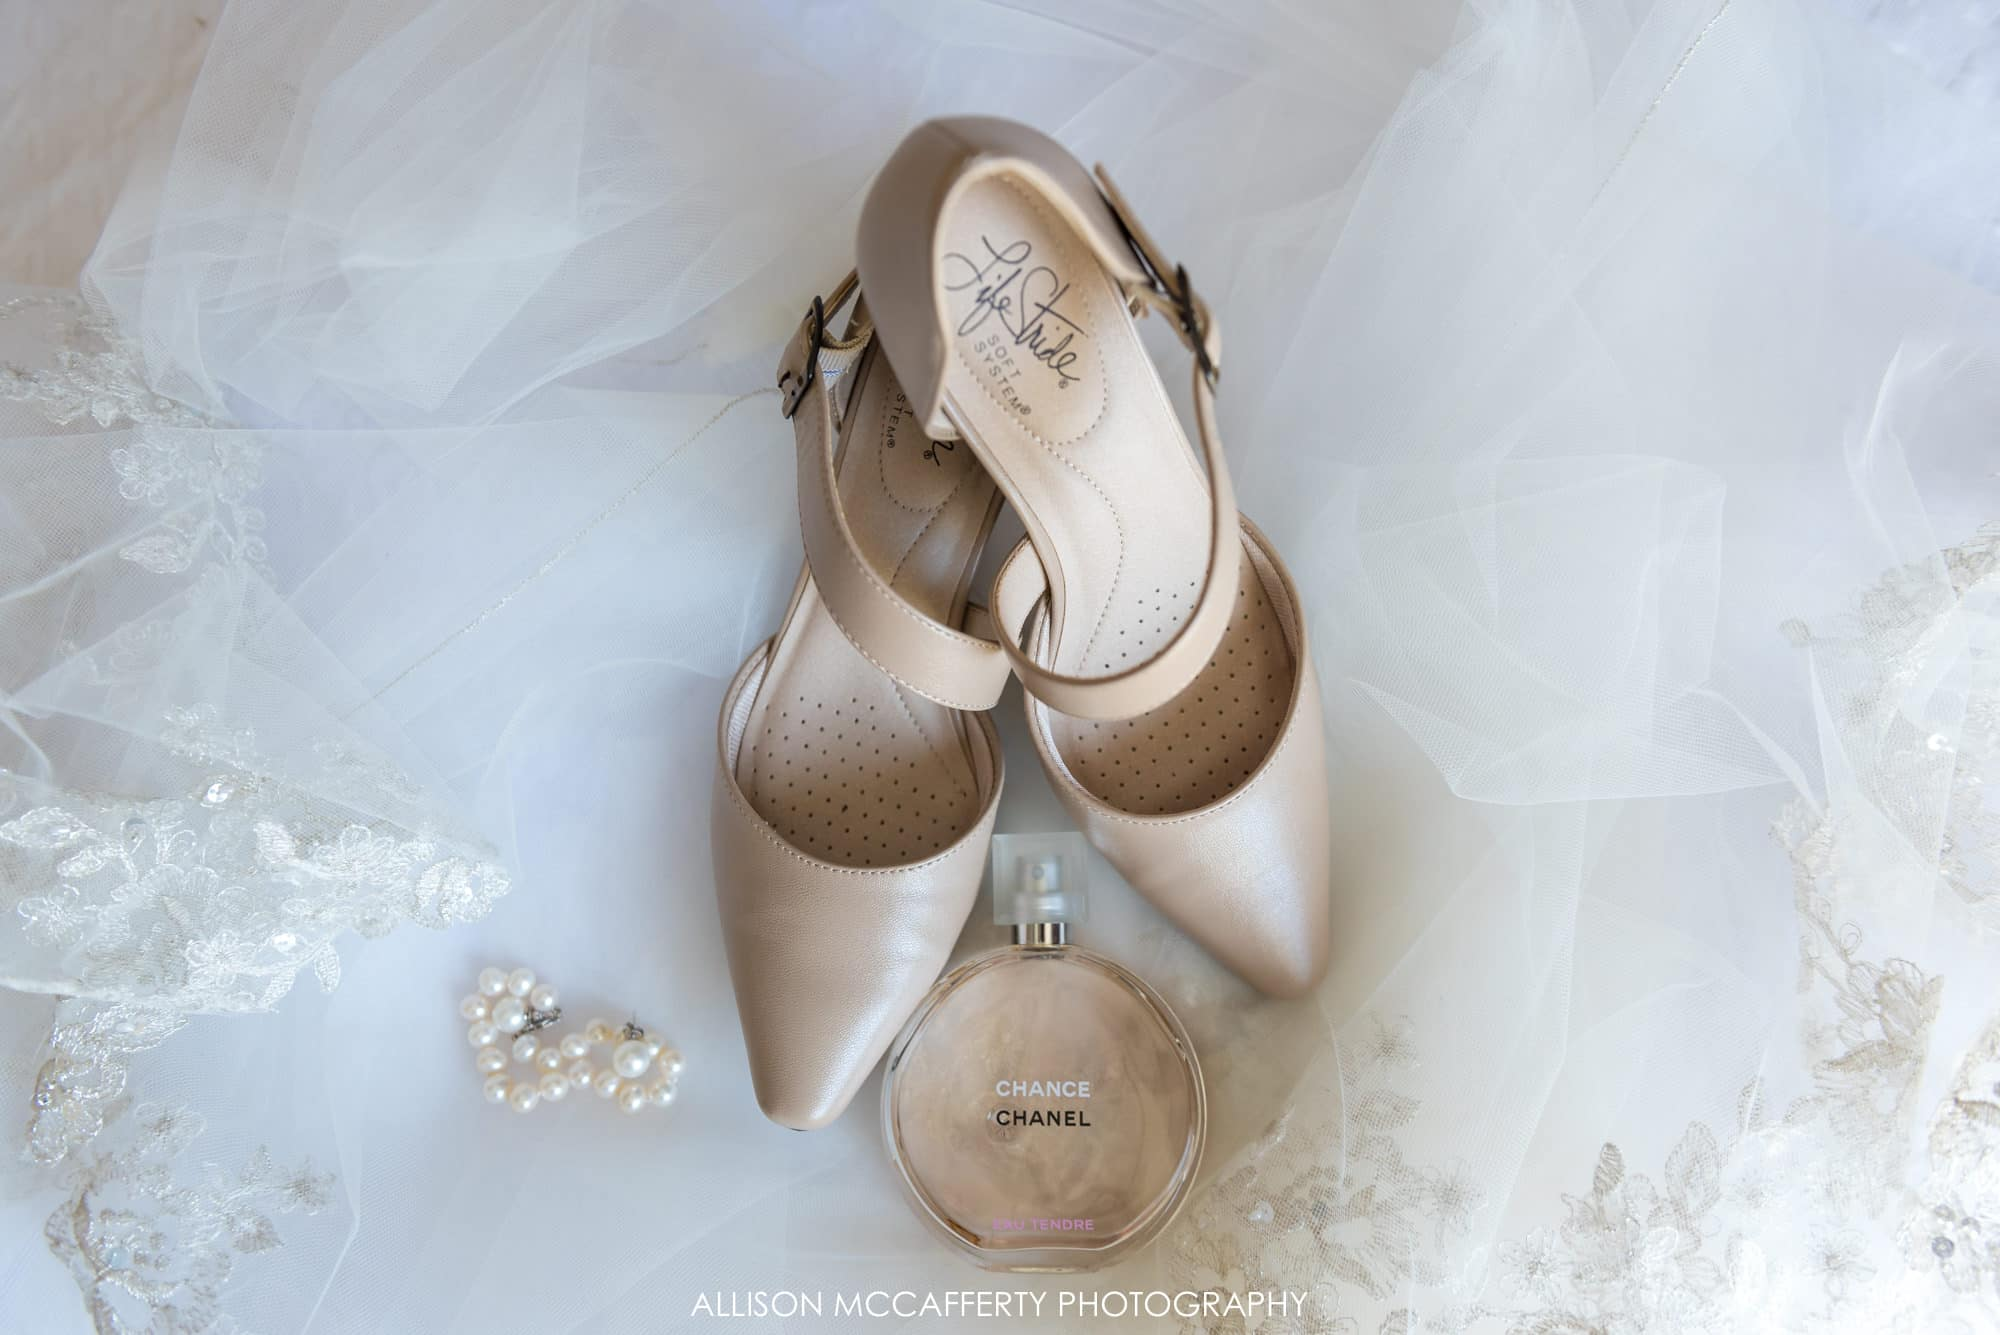 Wedding details, shoes, jewelry and perfume on a lace veil